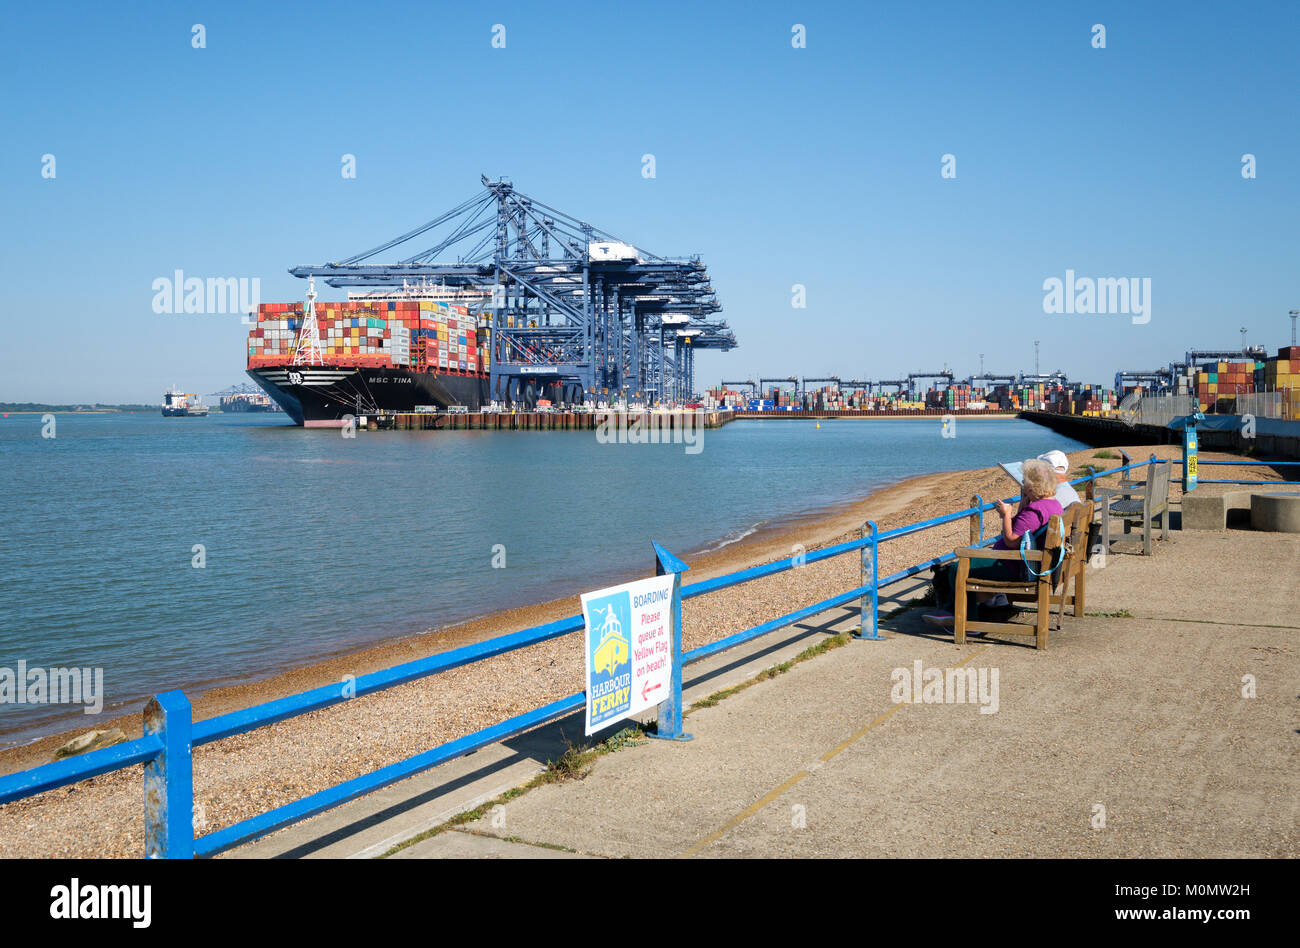 MSC (Mediterranean Shipping Company) container ship MSC Tina  being unloaded in the Port of Felixstowe, England, Stock Photo